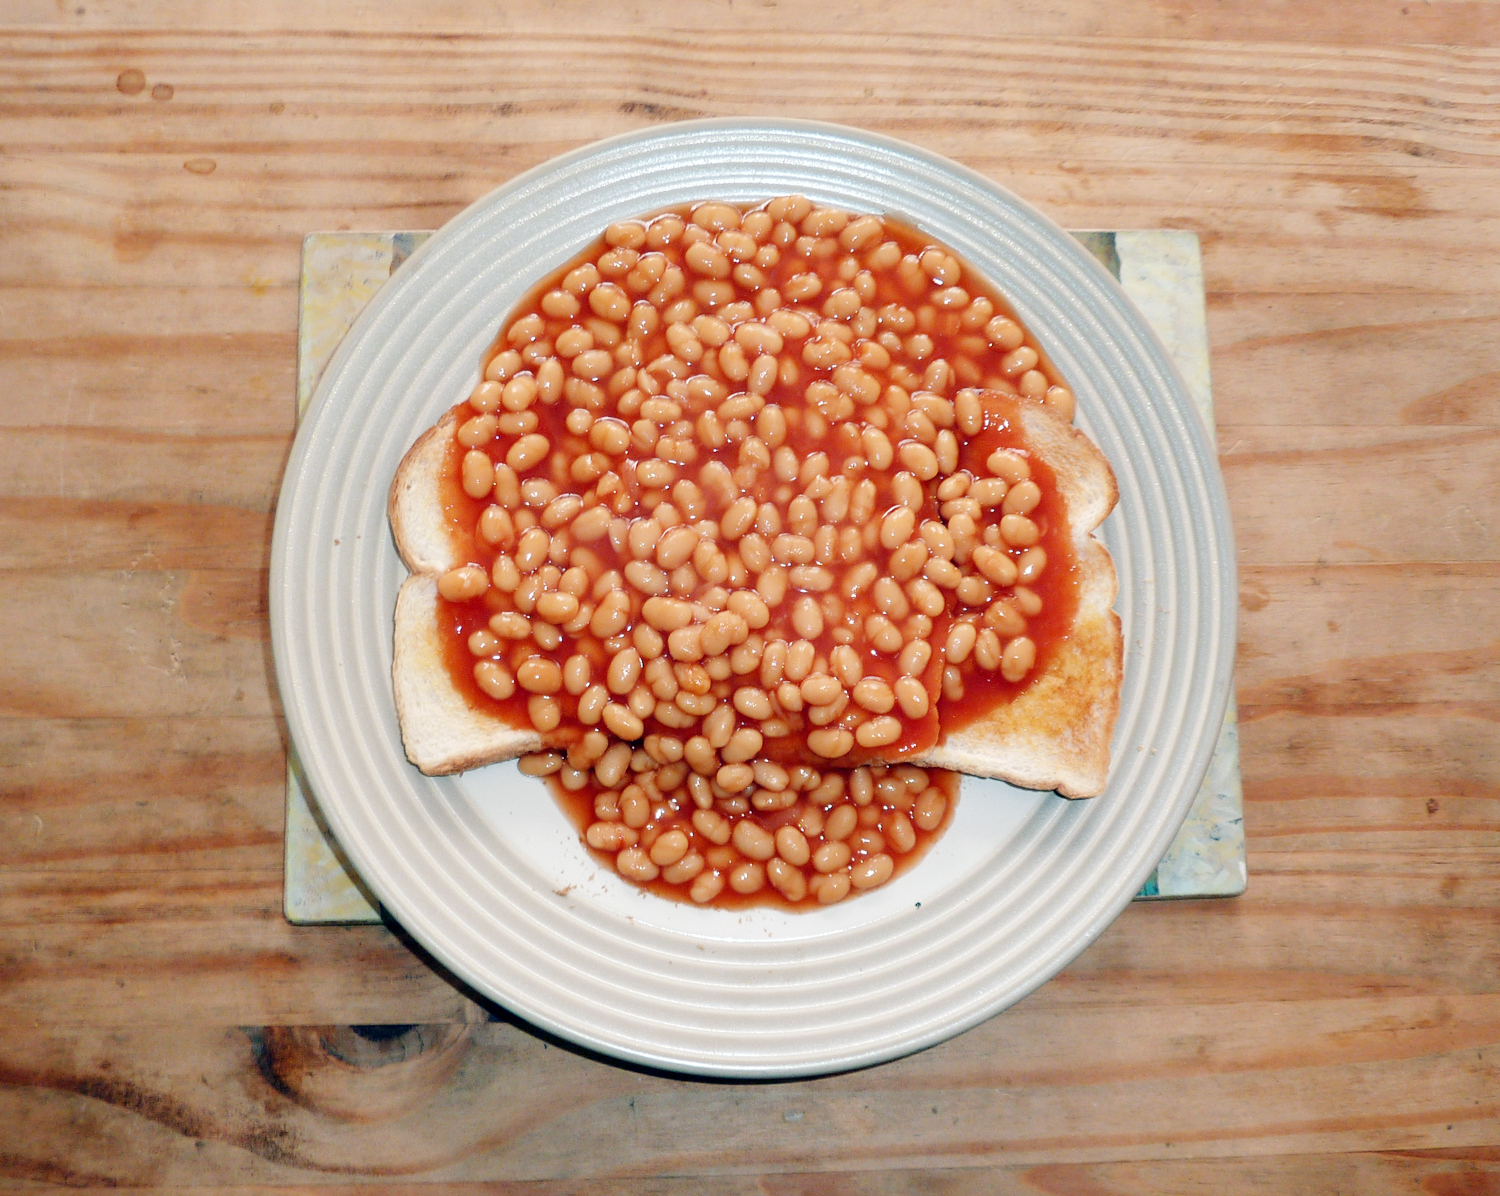 Brits cannot live without baked beans and crumpets!